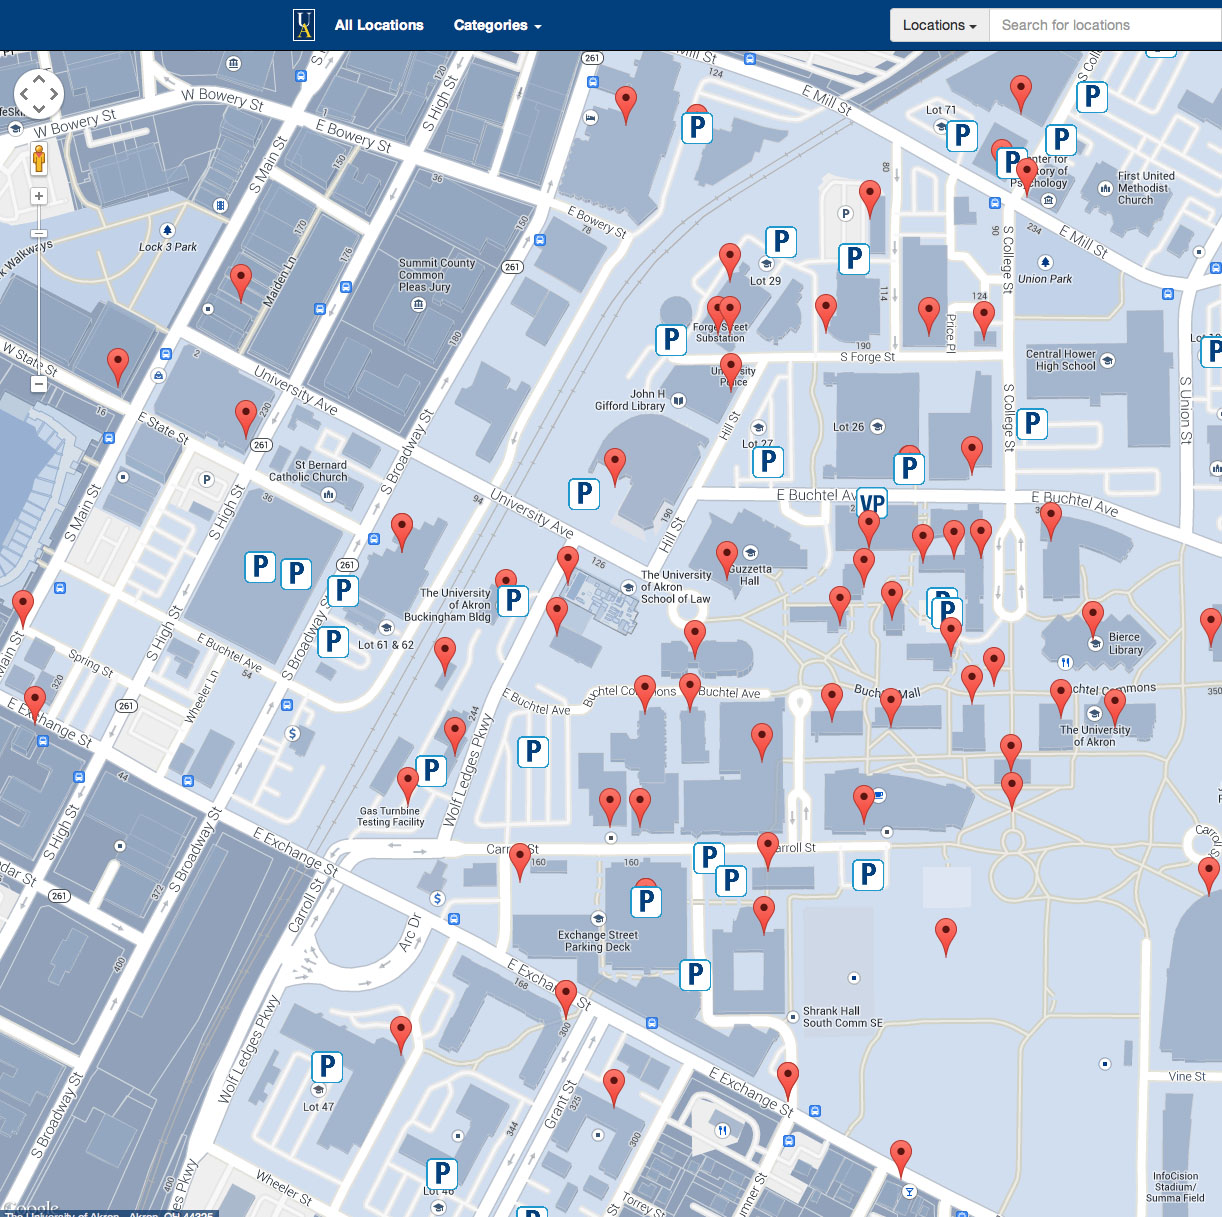 Interactive Campus Map SRU3